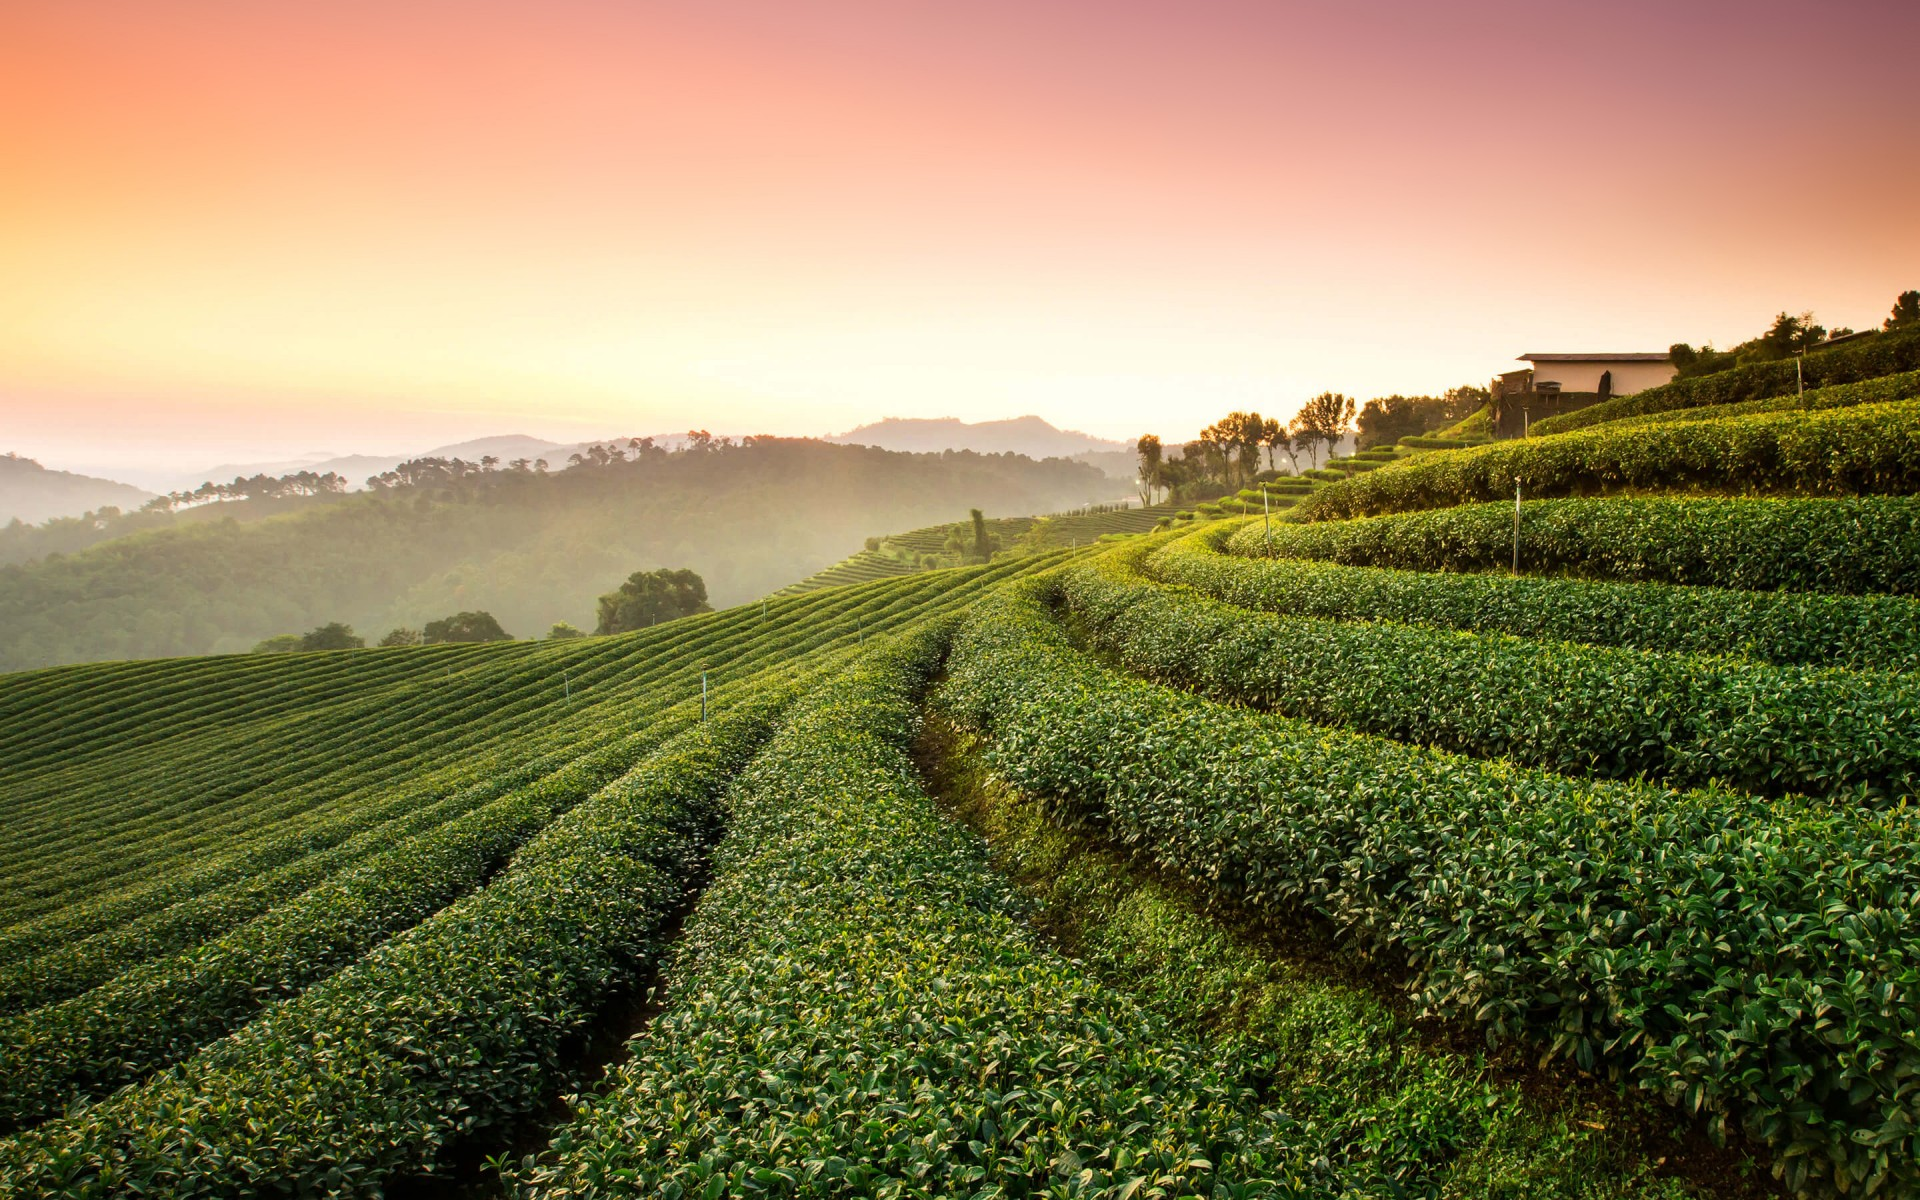 Cute Wallpapers For Iphone 7 Plus Tea Plantation Landscape Wallpapers Hd Wallpapers Id